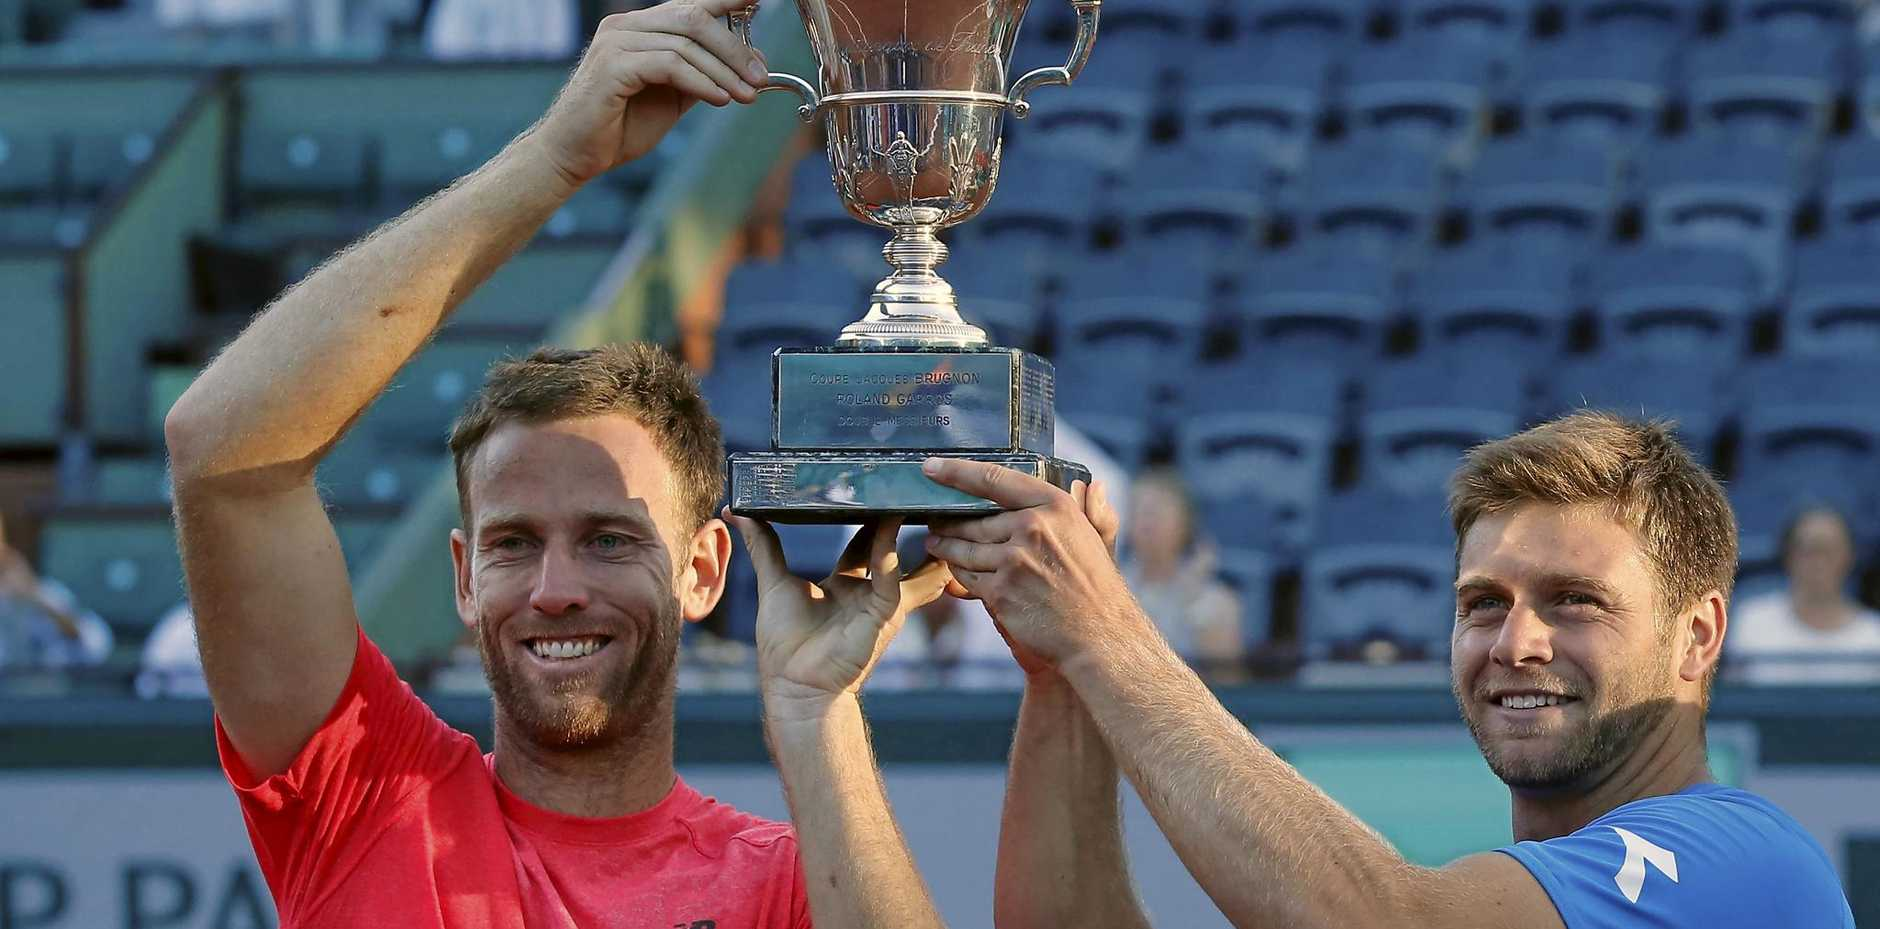 CHAMPIONS: American Ryan Harrison and Kiwi Michael Venus celebrate winning the French Open men's doubles title.